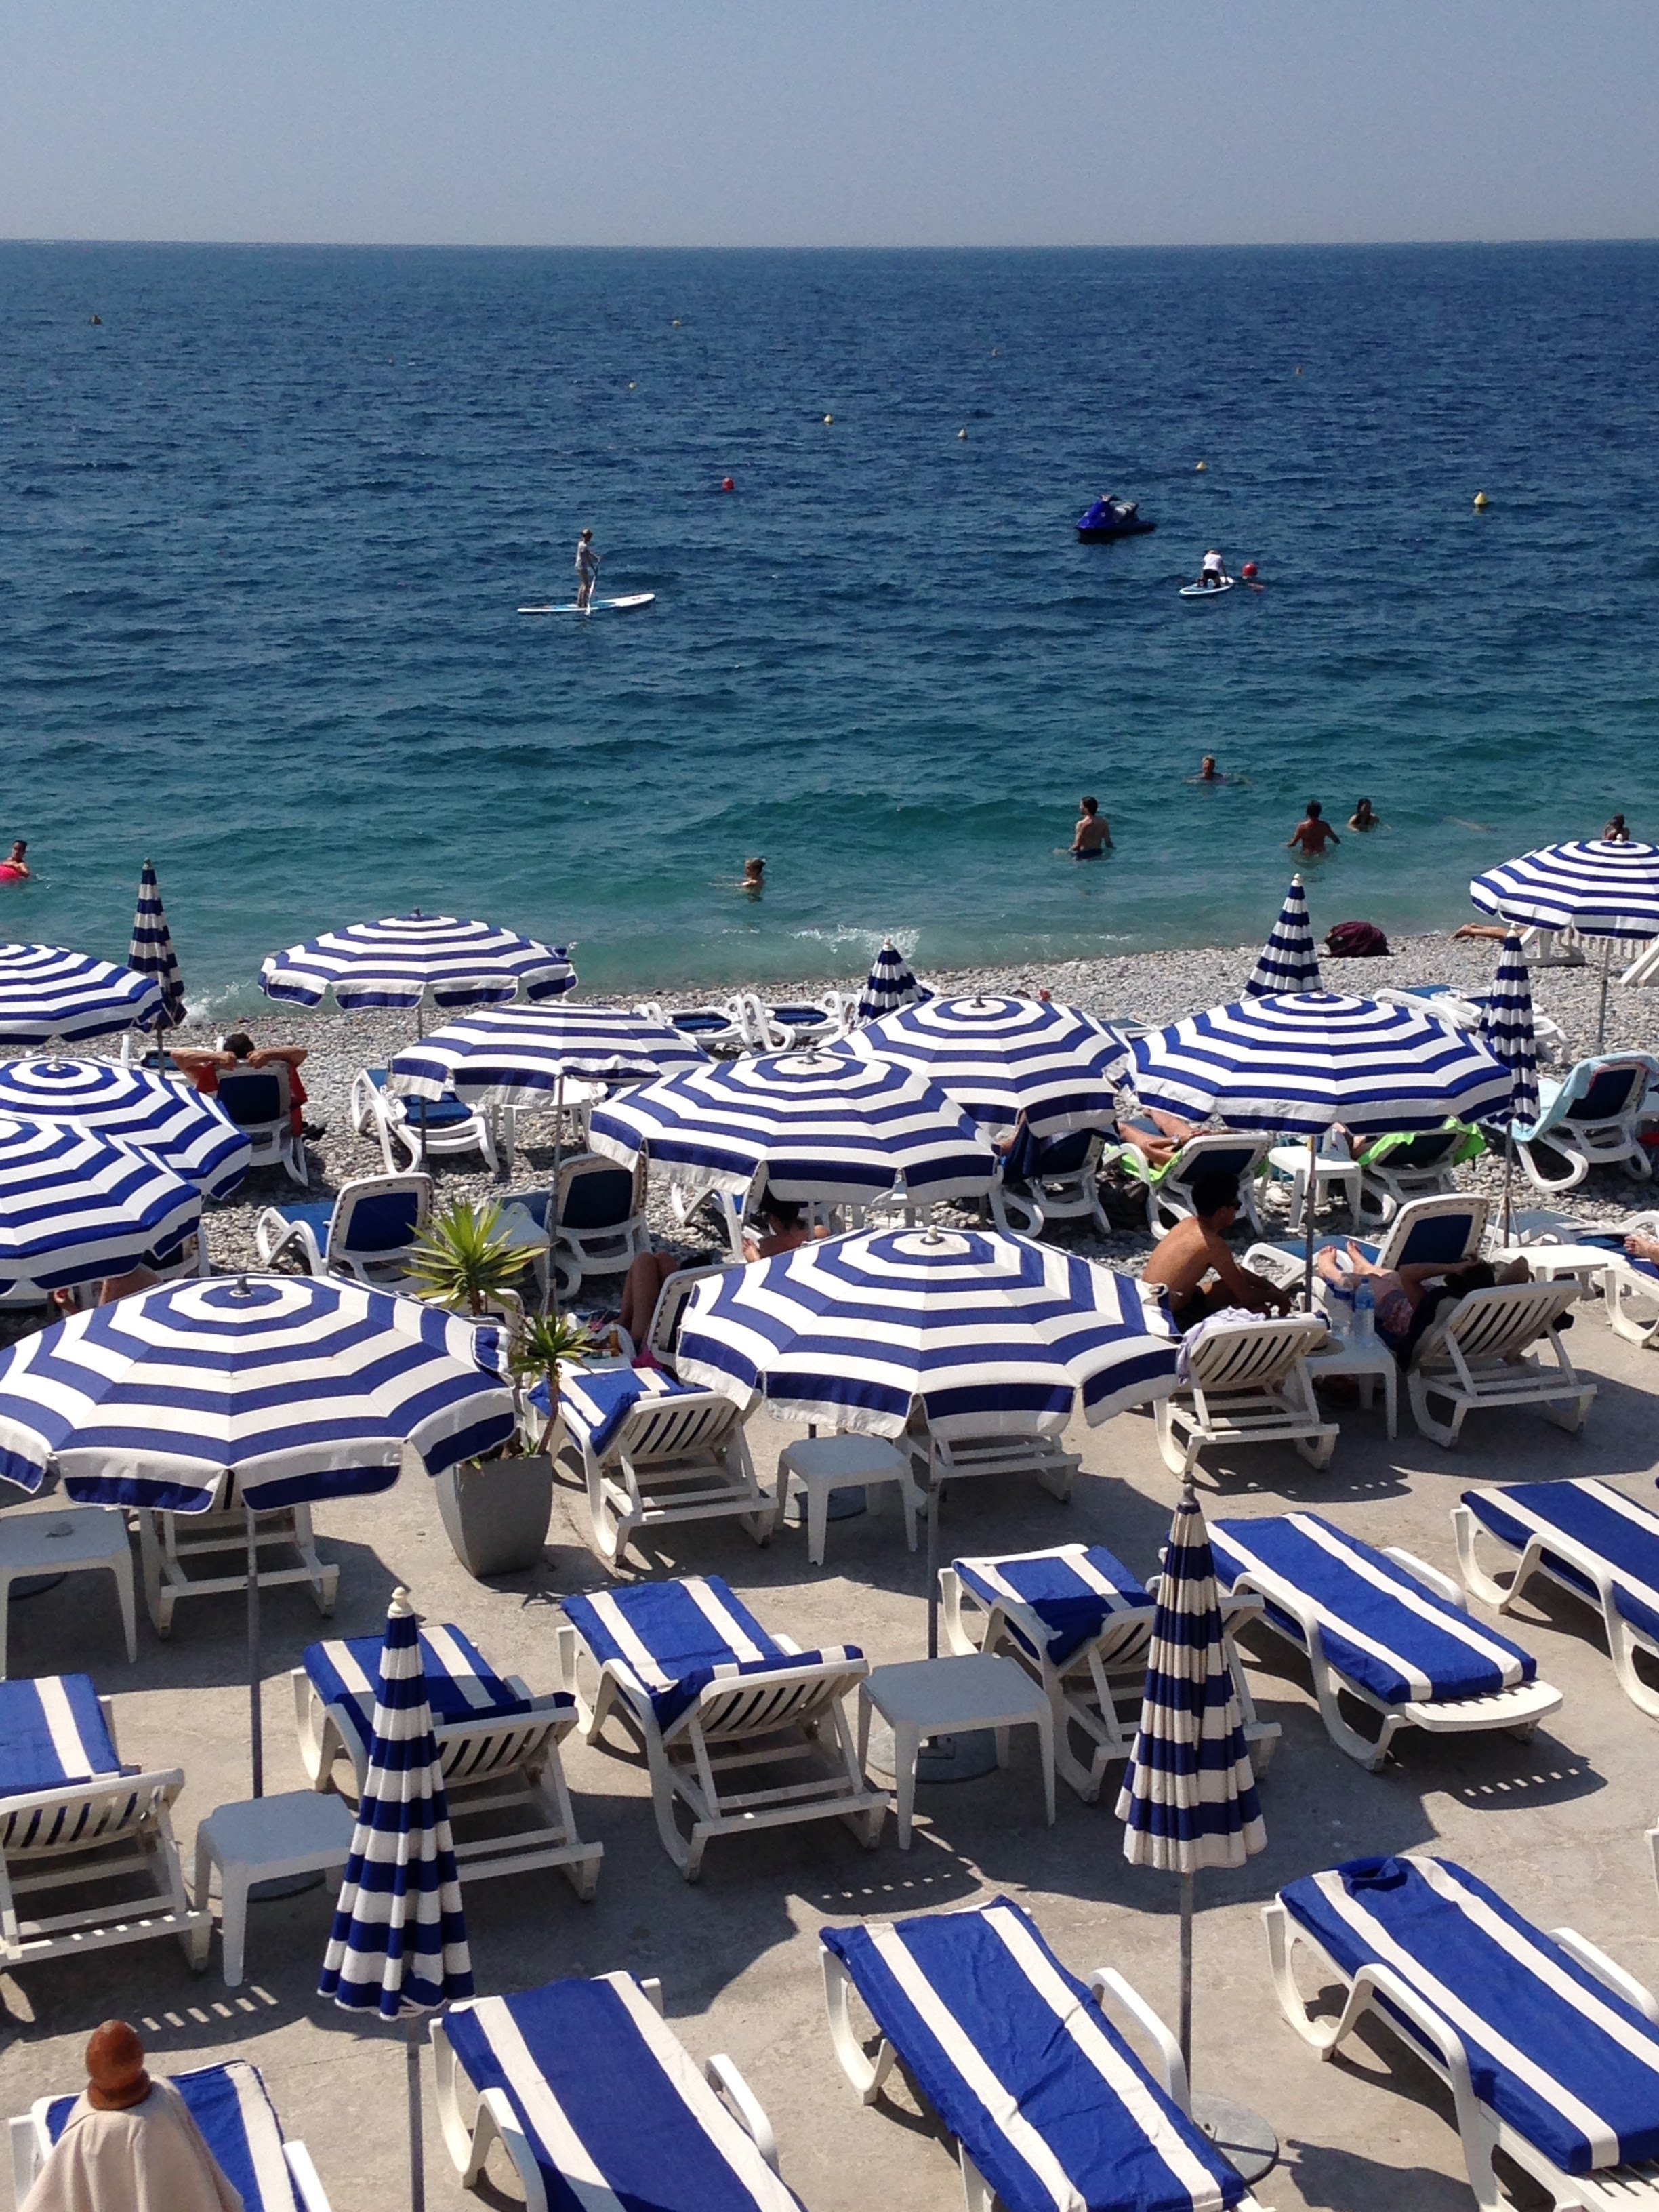 Beach umbrellas in Nice